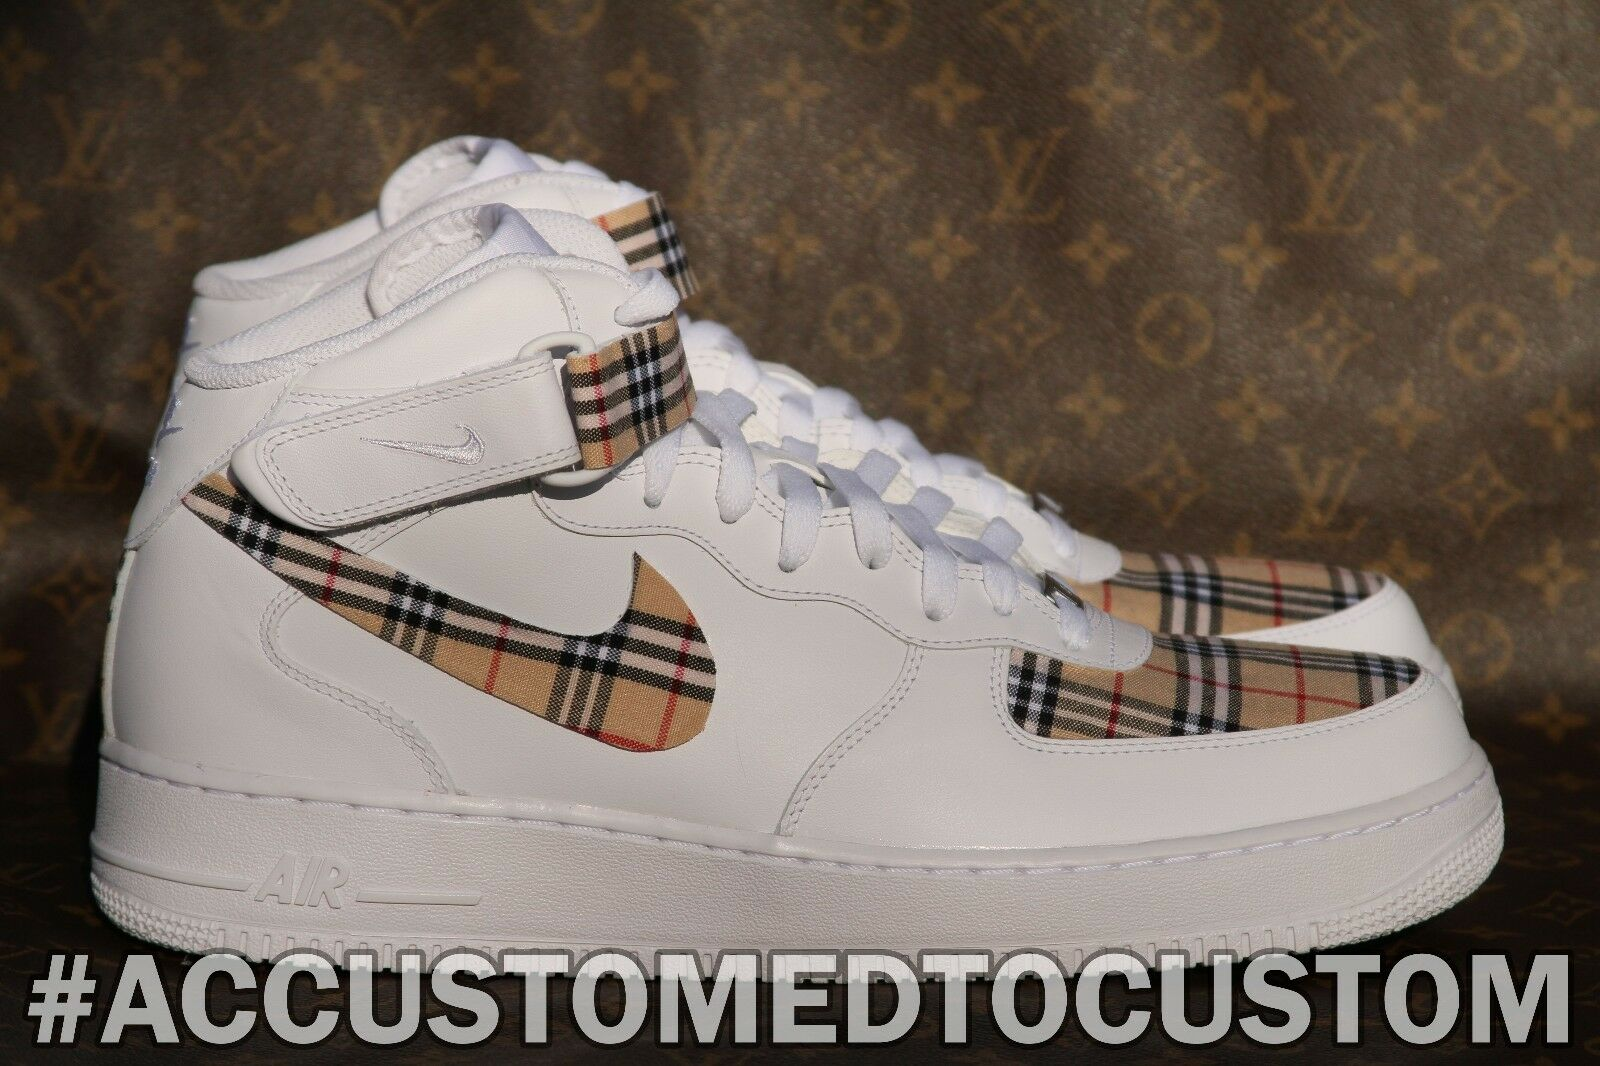 NIKE AIR FORCE 1 MID | MADE W/ BURRBERRY PLAID STYLE FABRIC CUSTOM Not Jordan